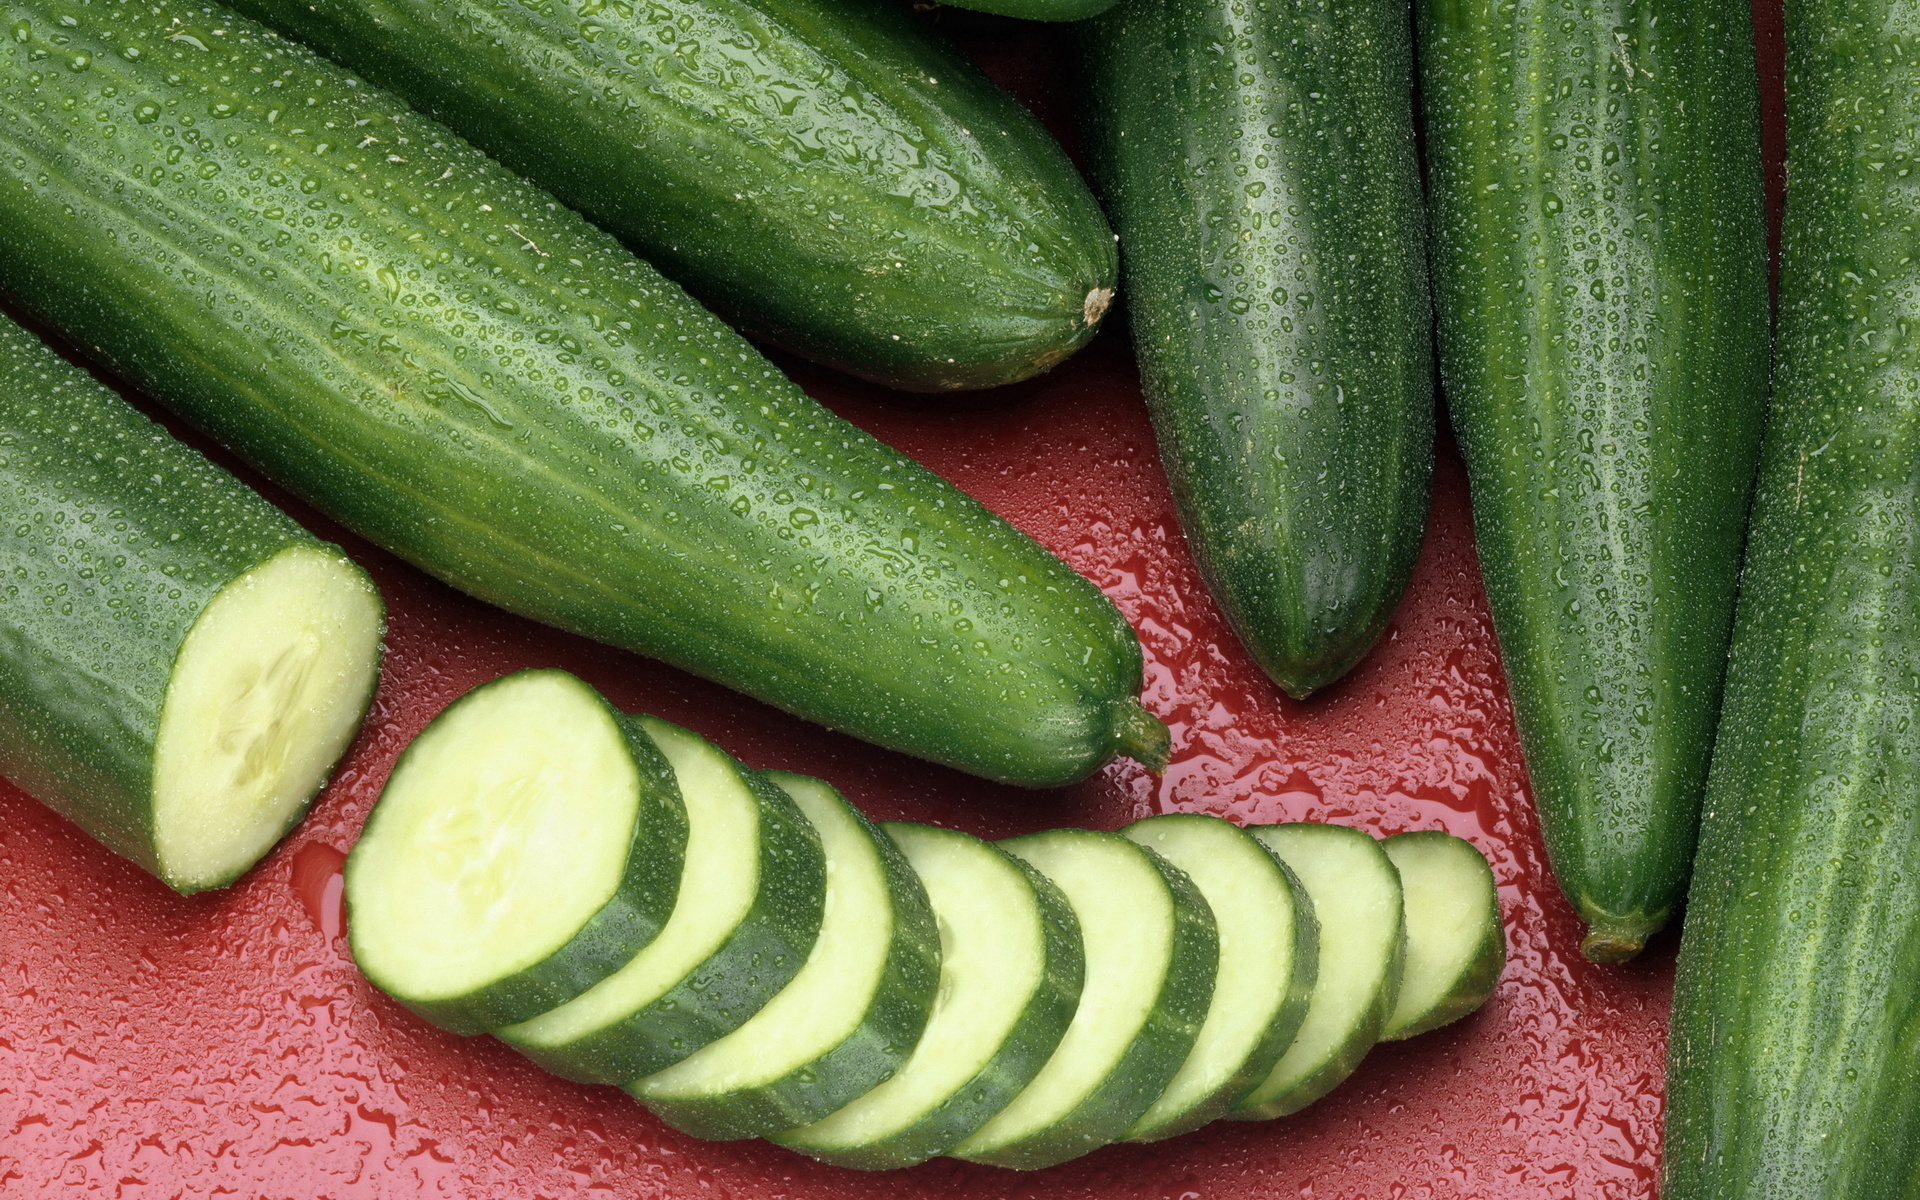 Hd Wallpaper Monsoon Cucumber Full Hd Wallpaper And Background Image